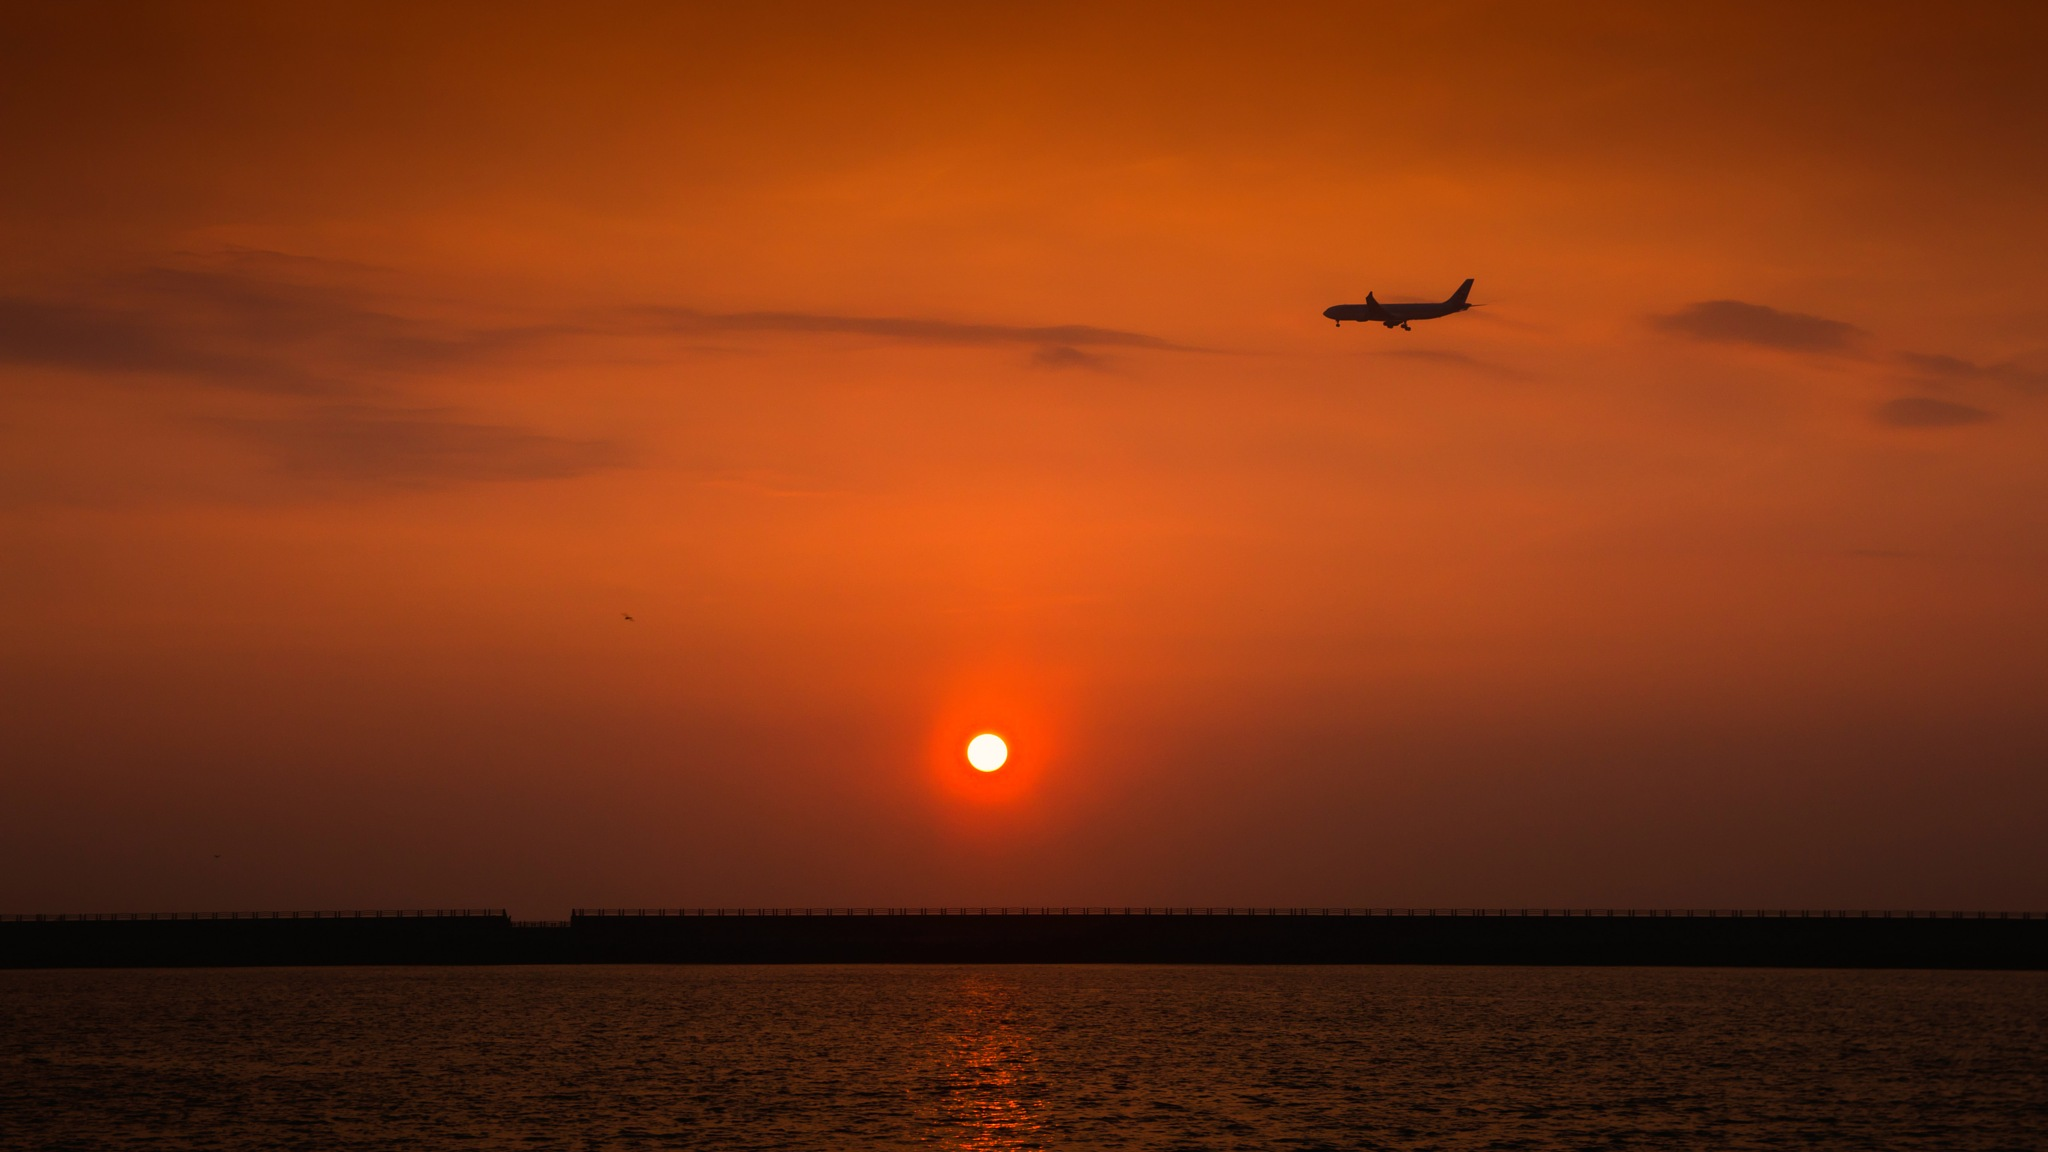 Sunset and Landing airplane by gorkhe1980